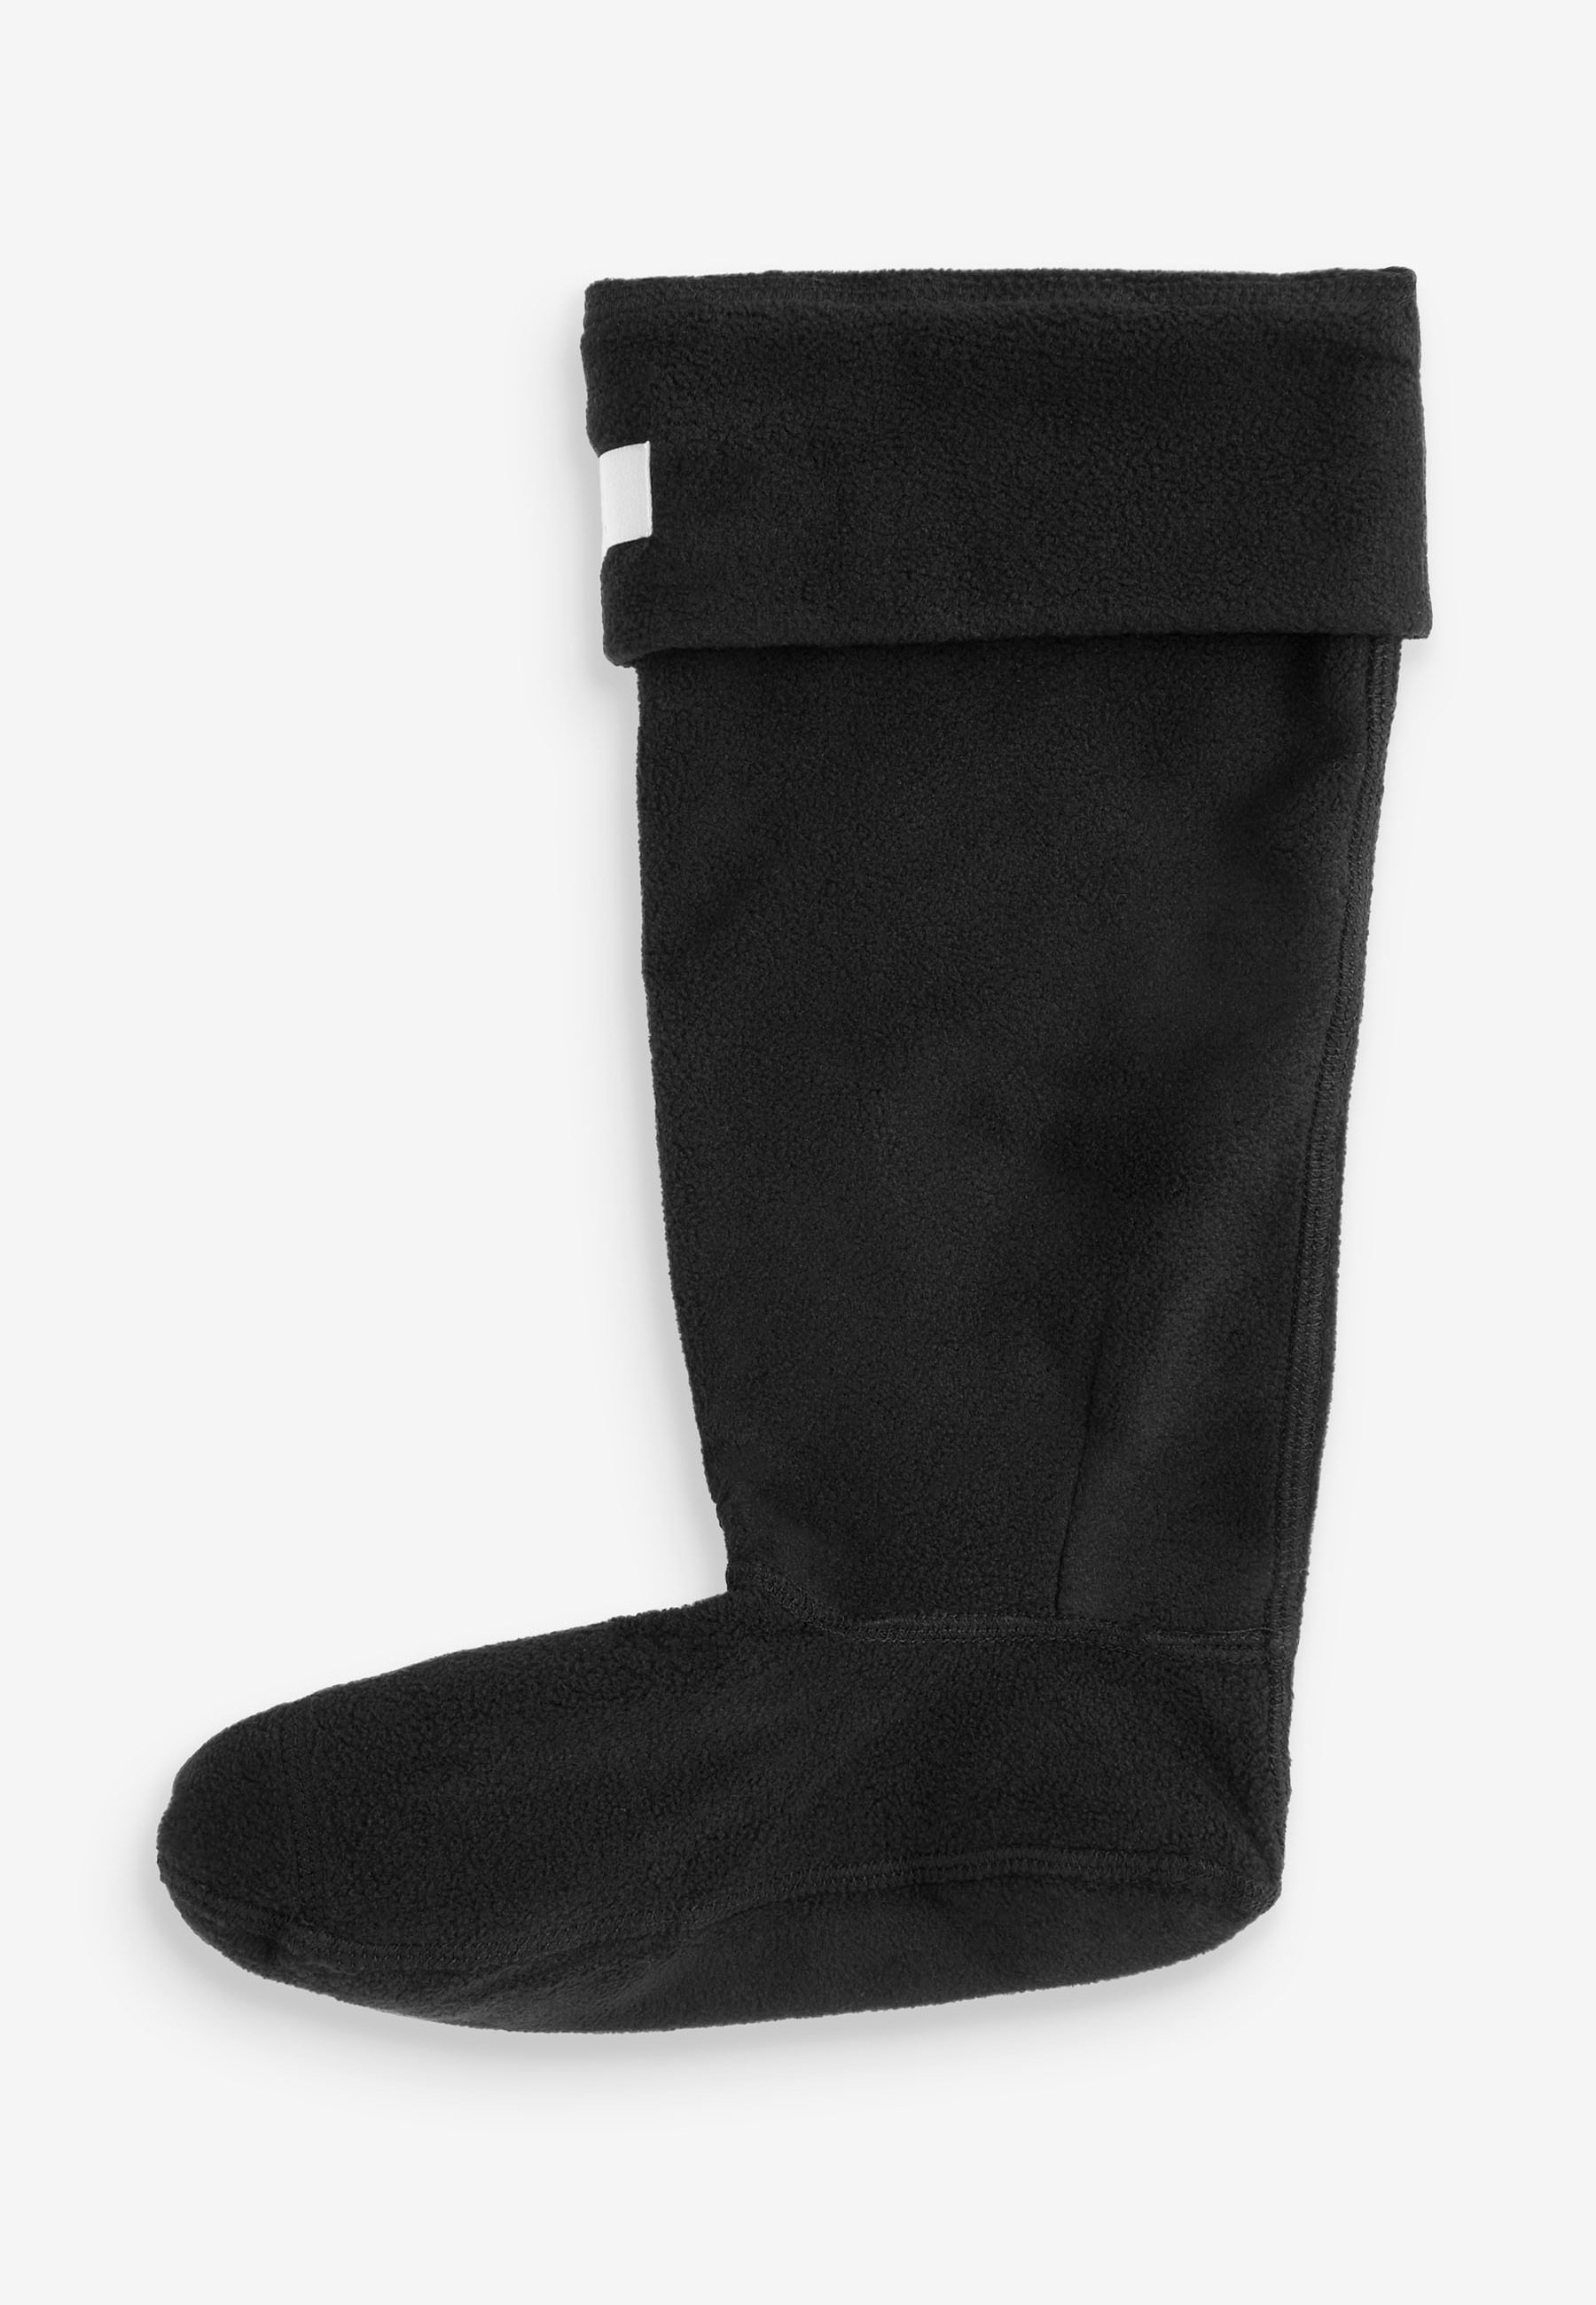 Mujer Calcetines